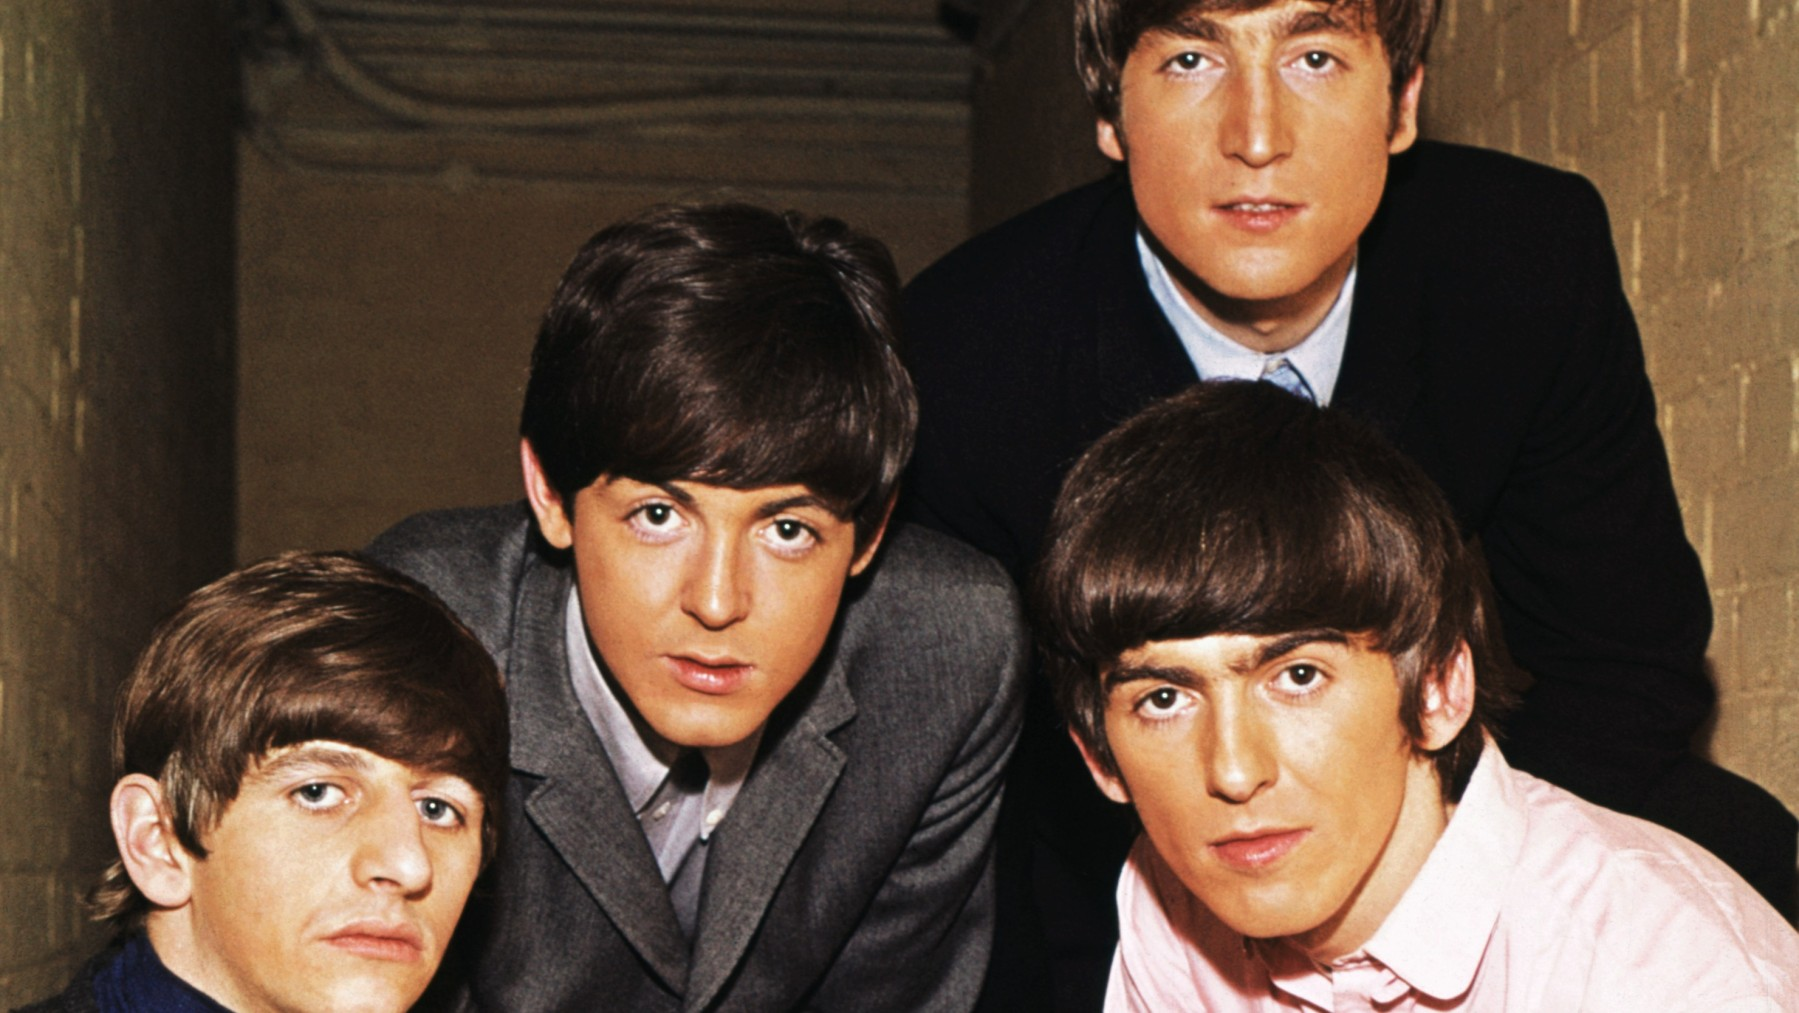 Portrait of the The Beatles. From left to right: Ringo Starr, Paul McCartney, John Lennon, and George Harrison.